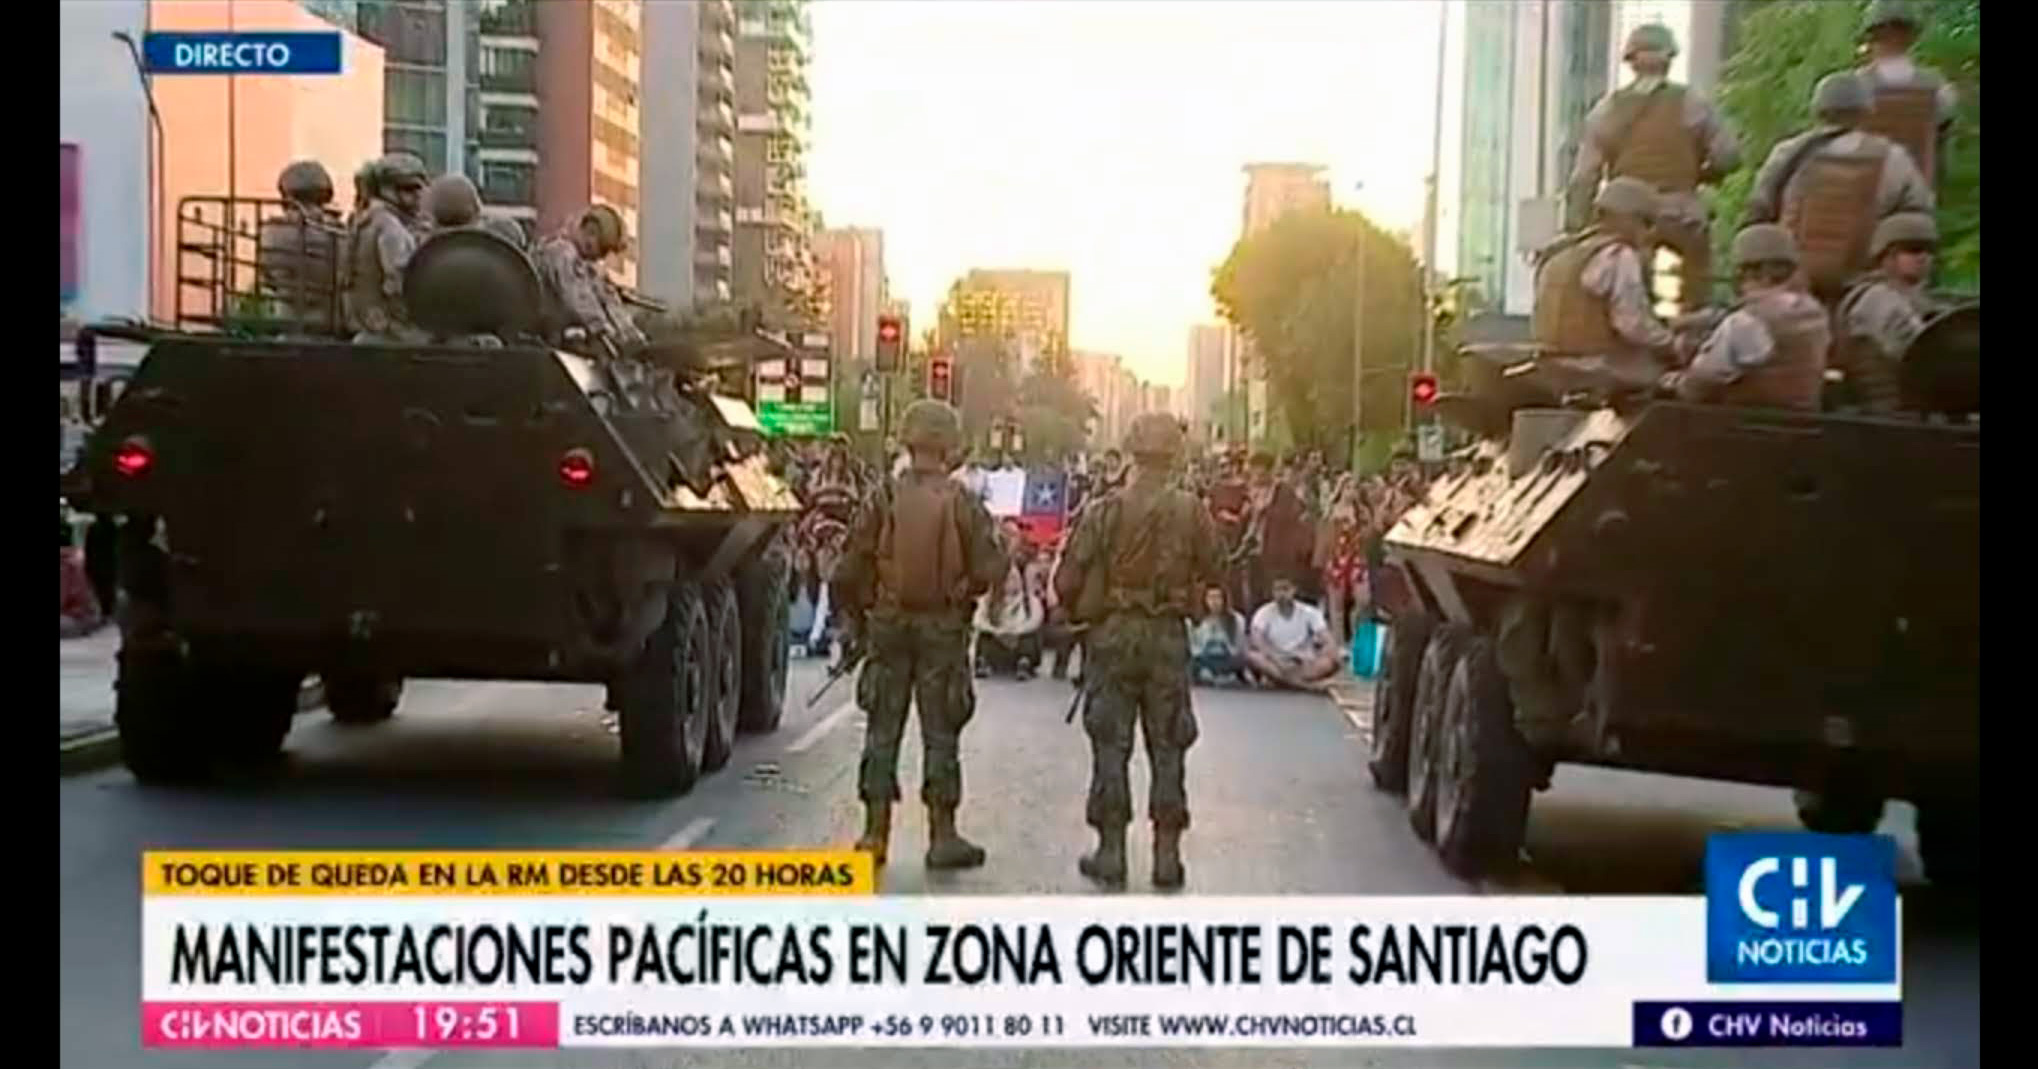 A military group and two tanks in front of a pacific protest